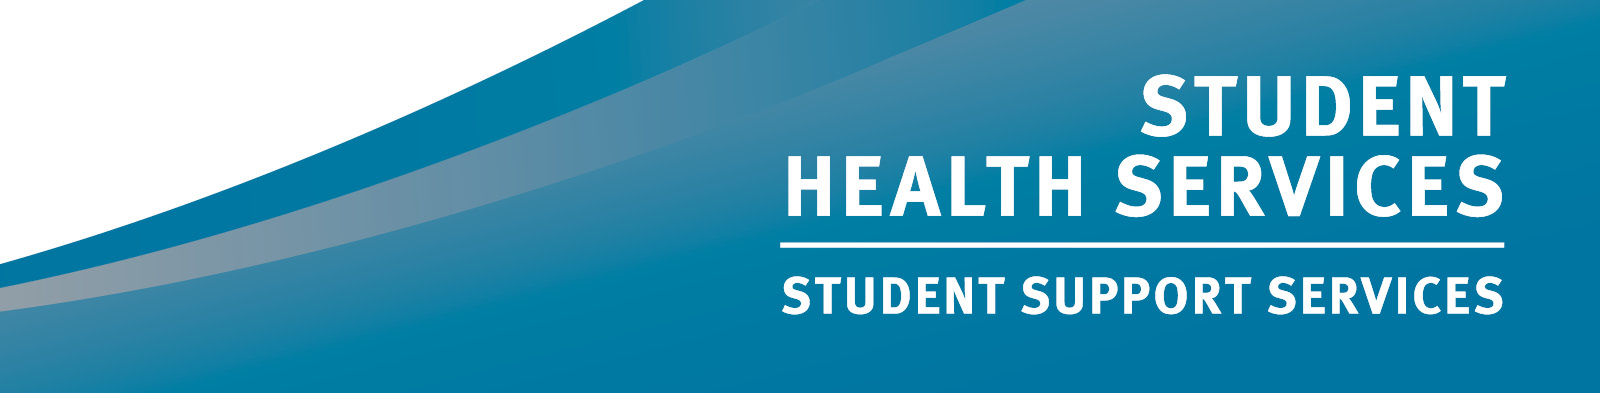 Student Health Services - Student Support Serivces